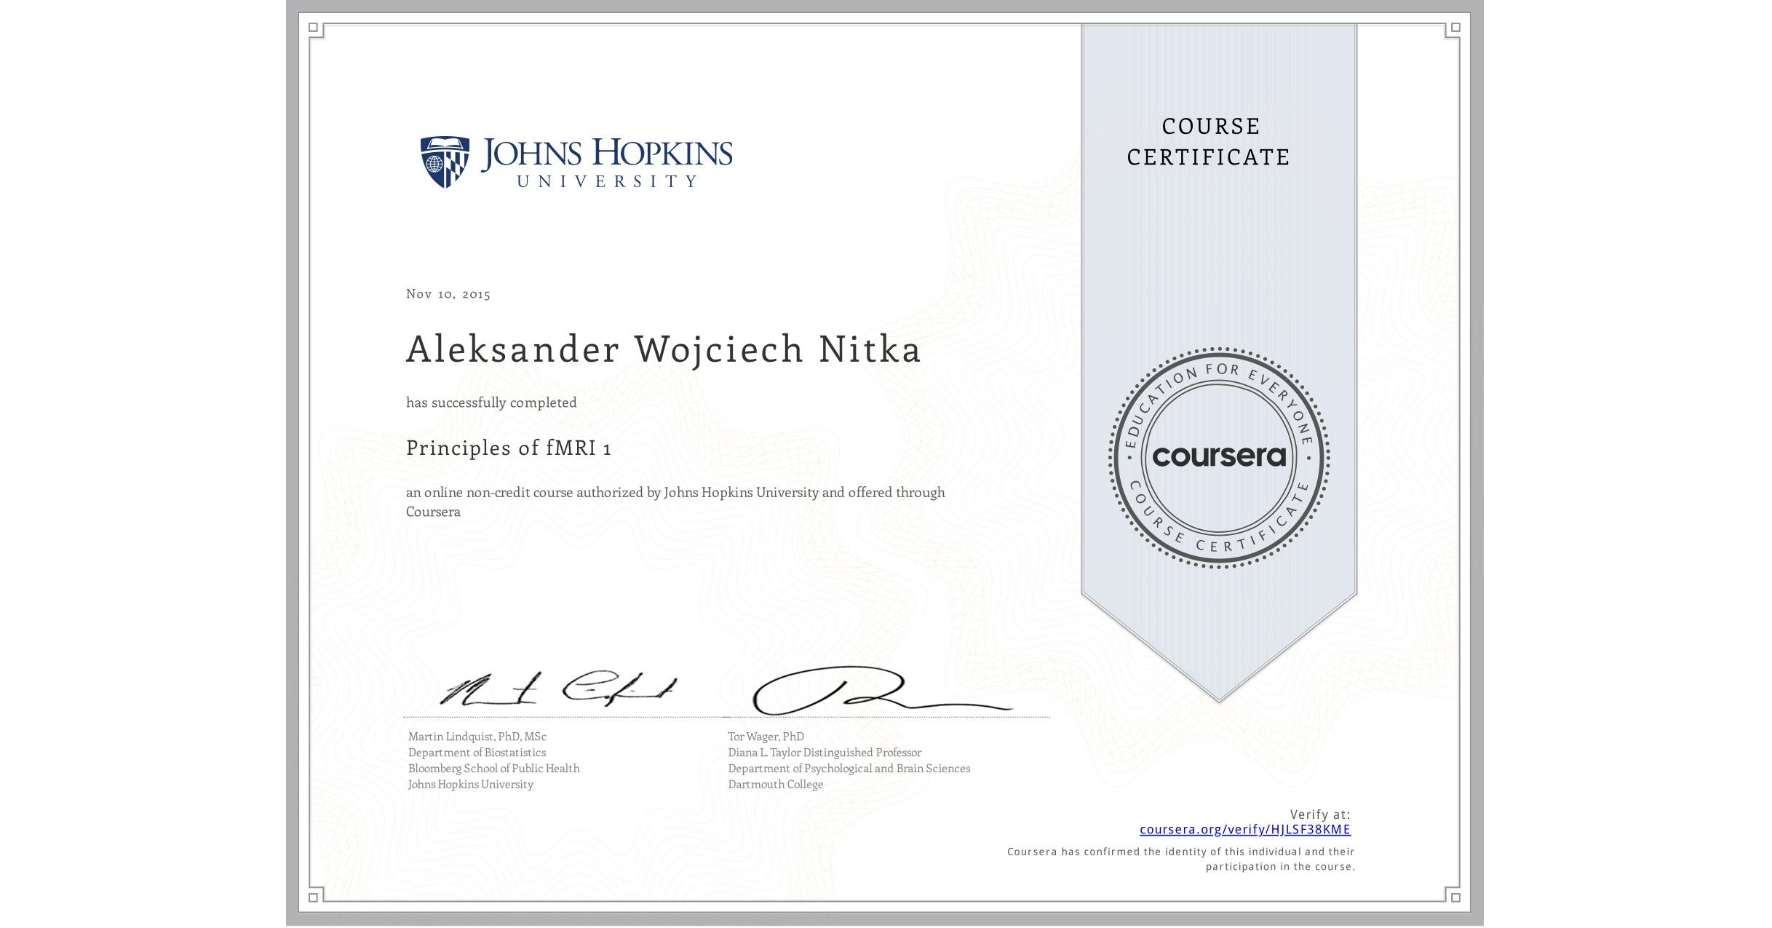 View certificate for Aleksander Wojciech Nitka, Principles of fMRI 1, an online non-credit course authorized by Johns Hopkins University and offered through Coursera